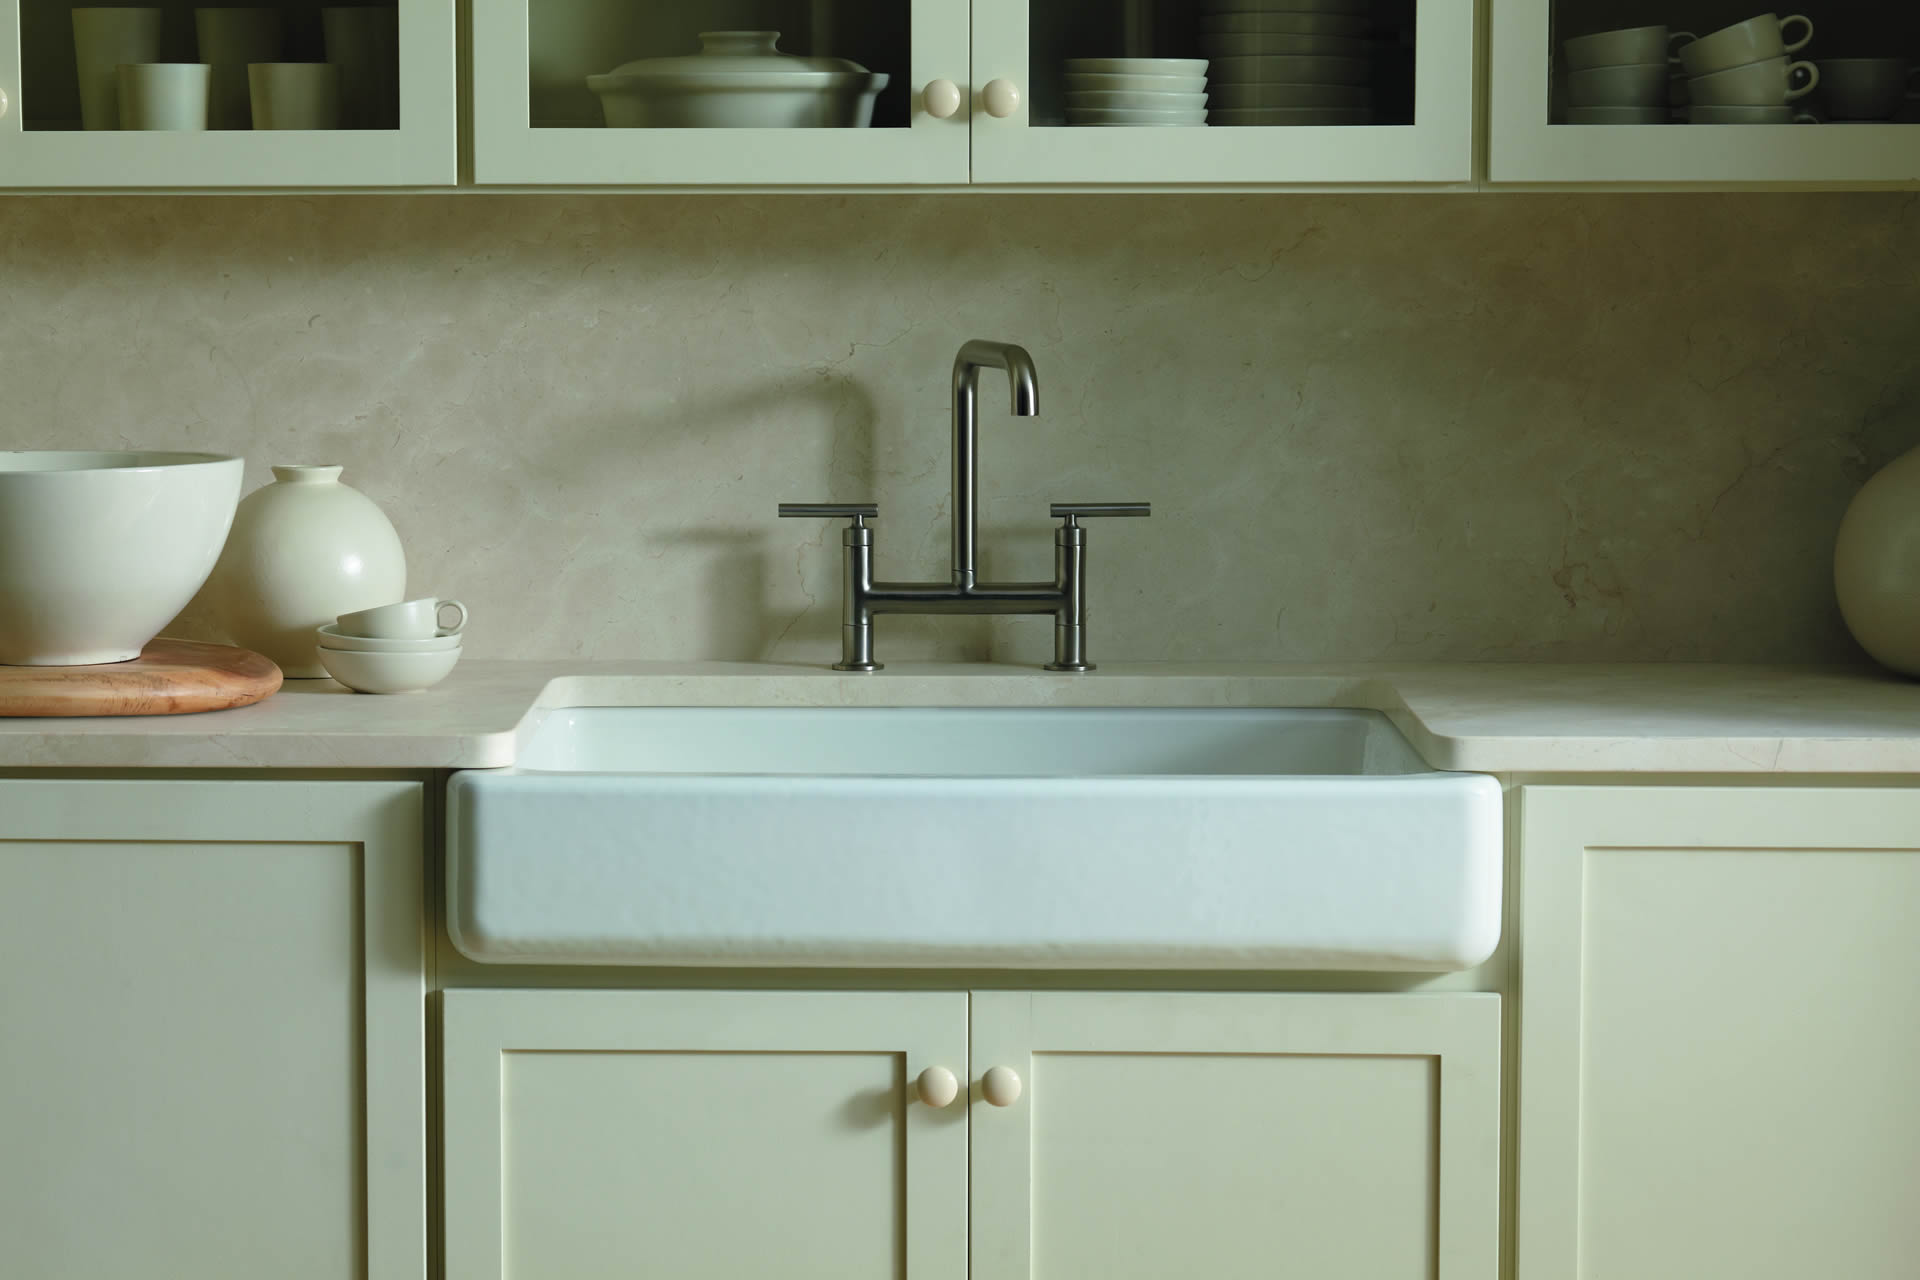 Kohler Whitehaven Farmhouse Sink Accessories Kitchen Sinks Store Wool Kitchen And Bath Store